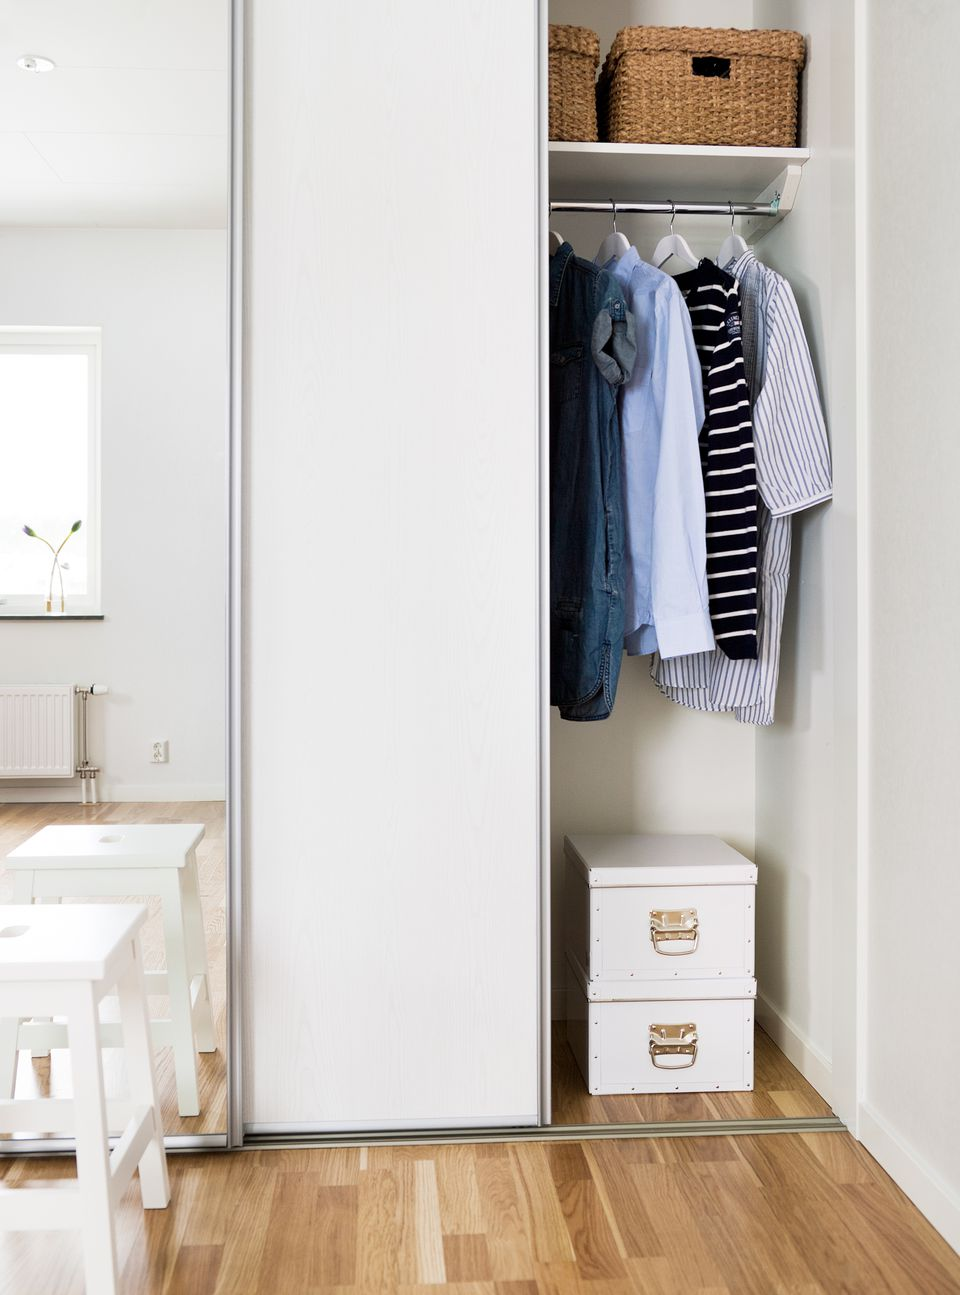 5 Common Organizing Mistakes With Small Closets